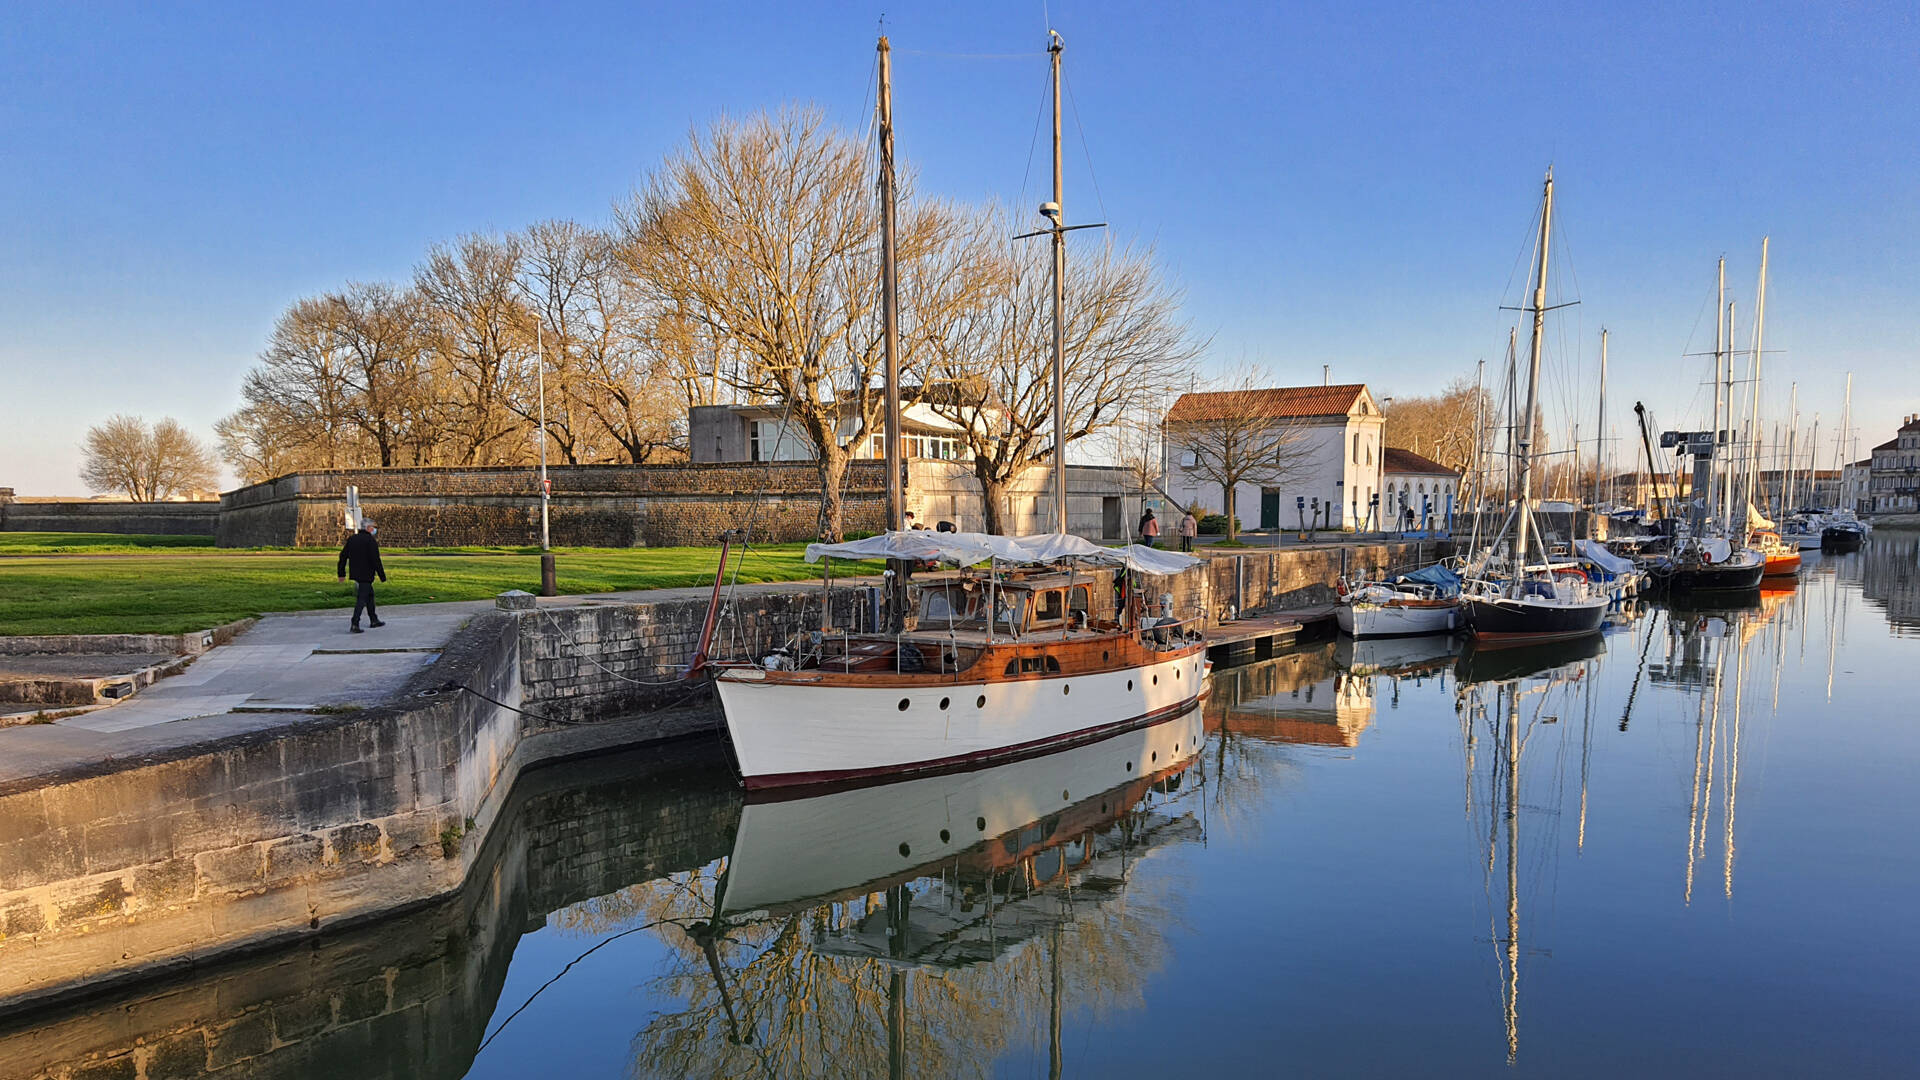 Port de plaisance Rochefort ©Chrystelle ECALE